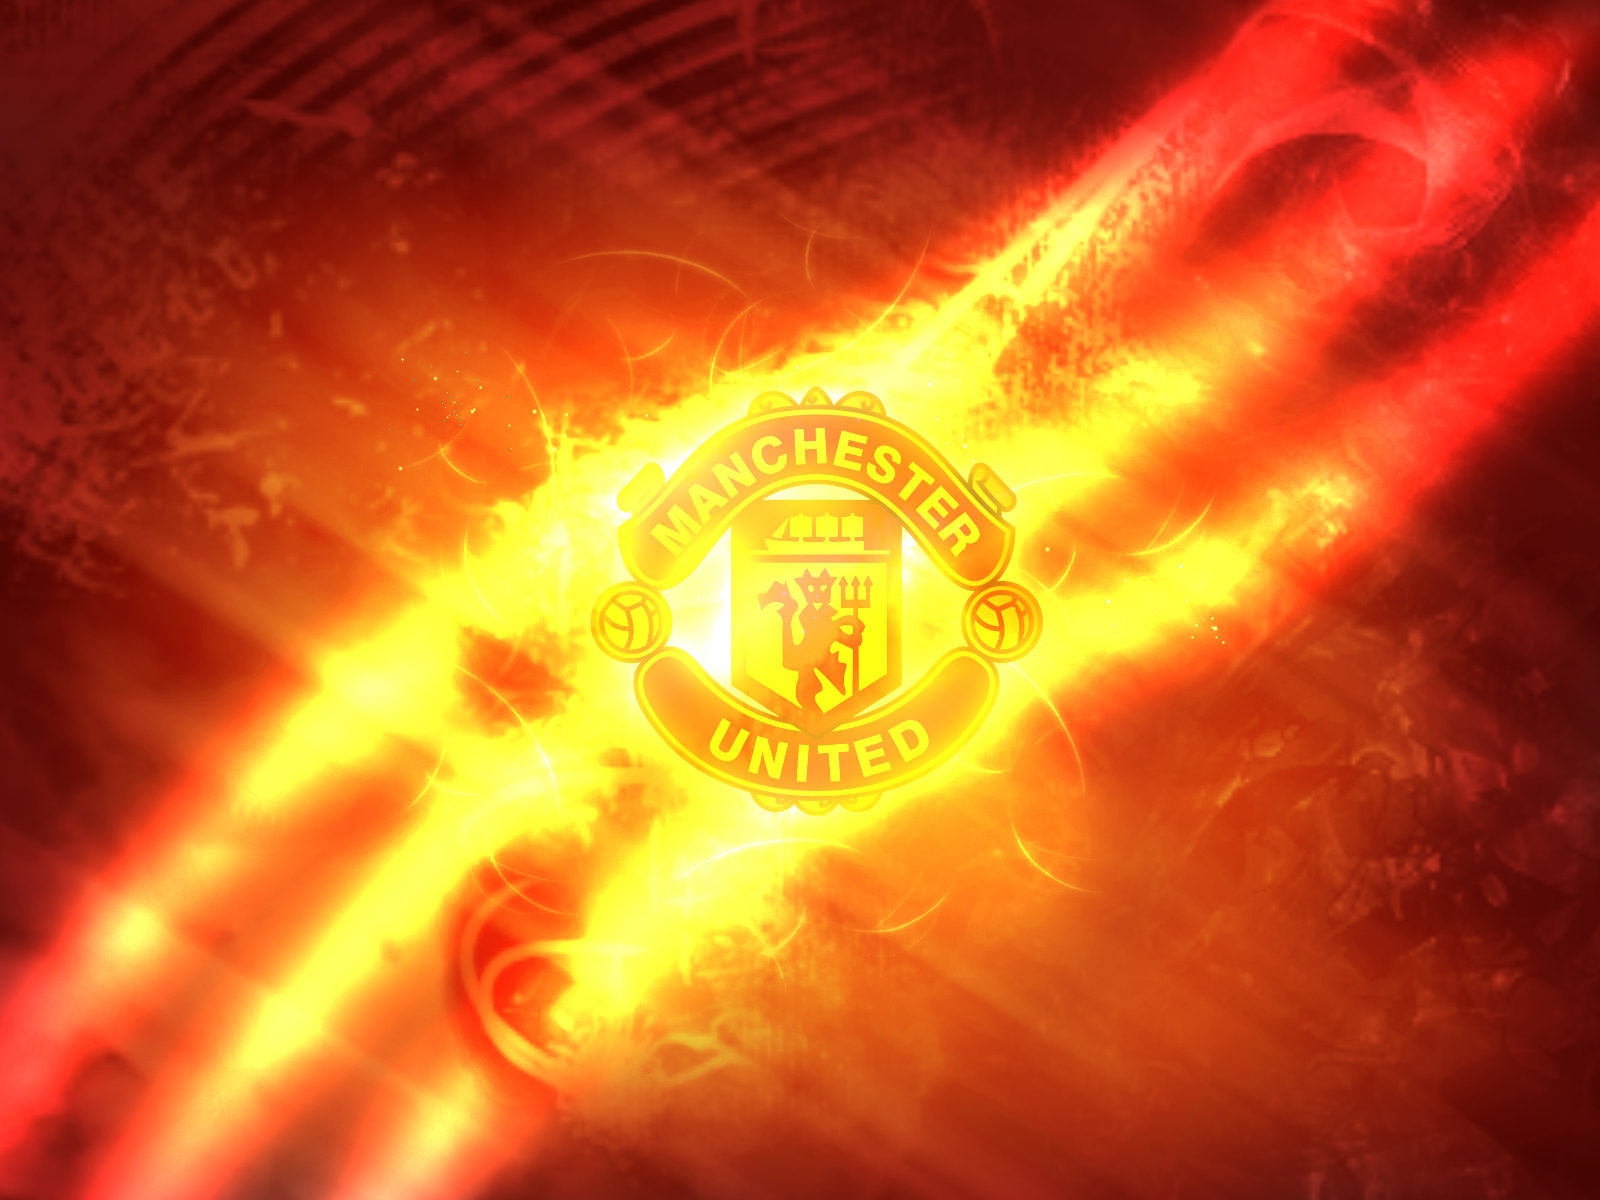 Manchester united wallpapers hd 2012 - Manchester united latest wallpapers hd ...